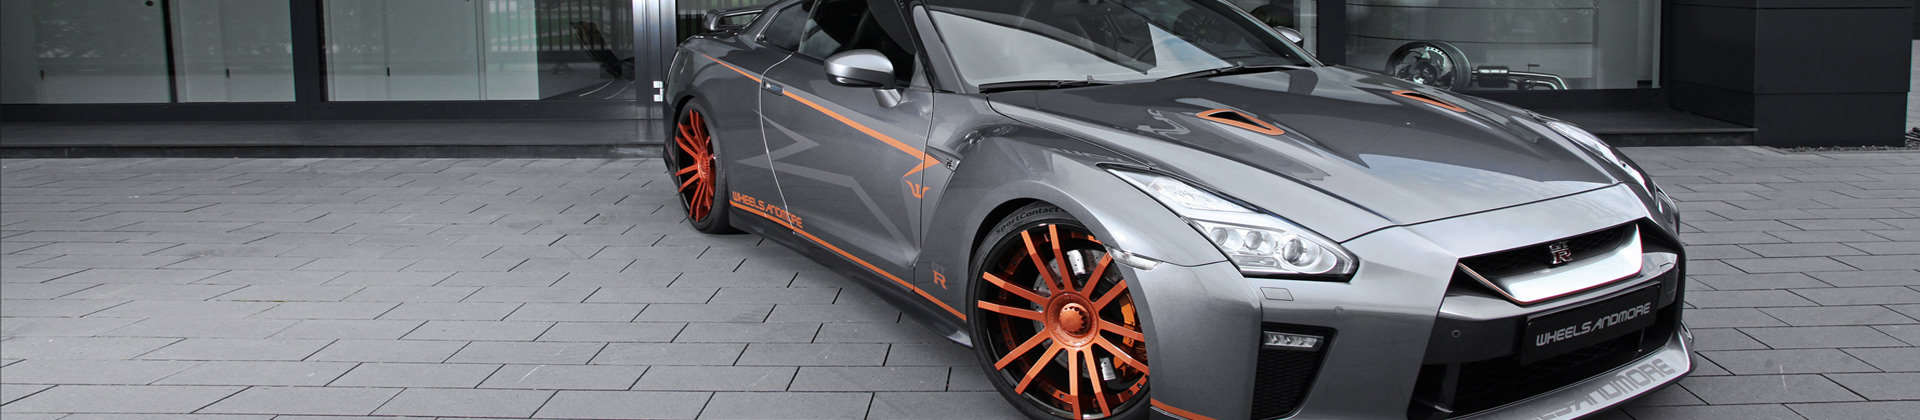 Nissan GTR Tuning from Germany by Wheelsandmore